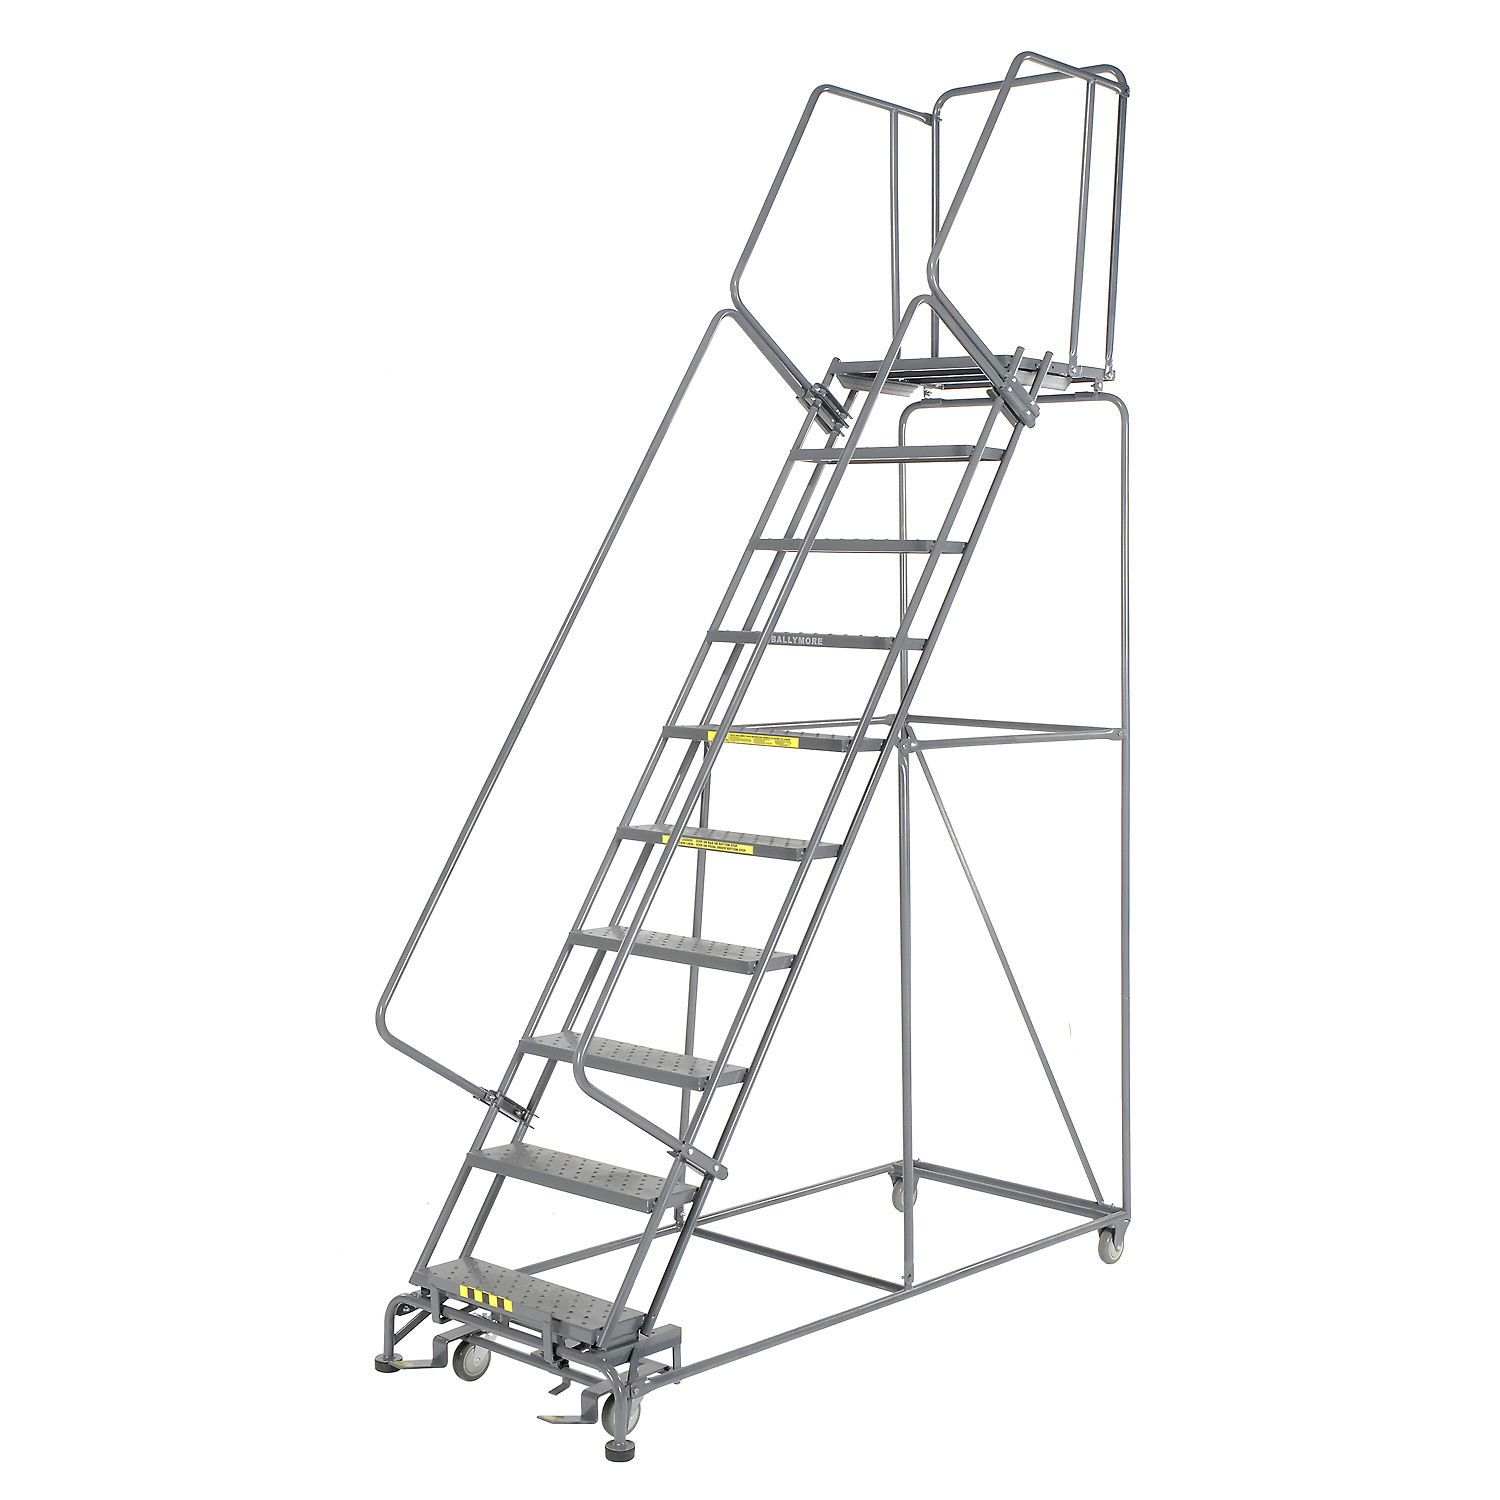 Ladders Rolling Steel Ladders Perforated 24 Quot W 10 Step Steel Rolling Ladder 21 Quot D Top Step 607374 Globalin In 2020 With Images Rolling Ladder Ladder Plumbing Pumps